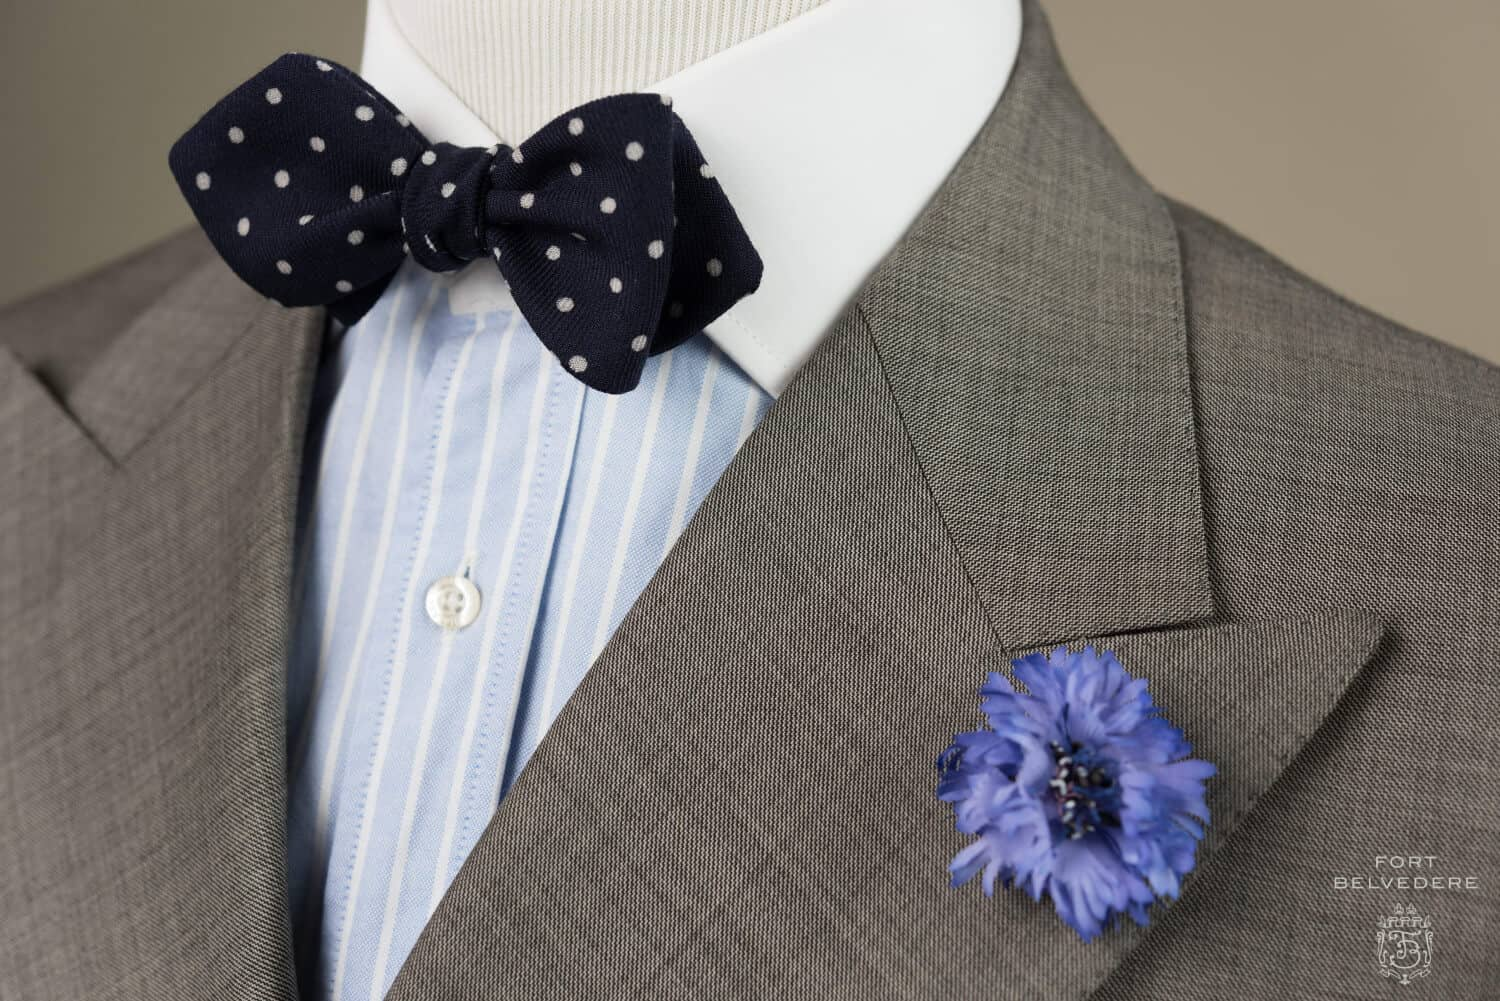 Winchester shirt with Wool Challis Navy Bow Tie with White Polka dots paired with Blue Cornflower Boutonniere Buttonhole Flower Silk - Handmade by Fort Belvedere